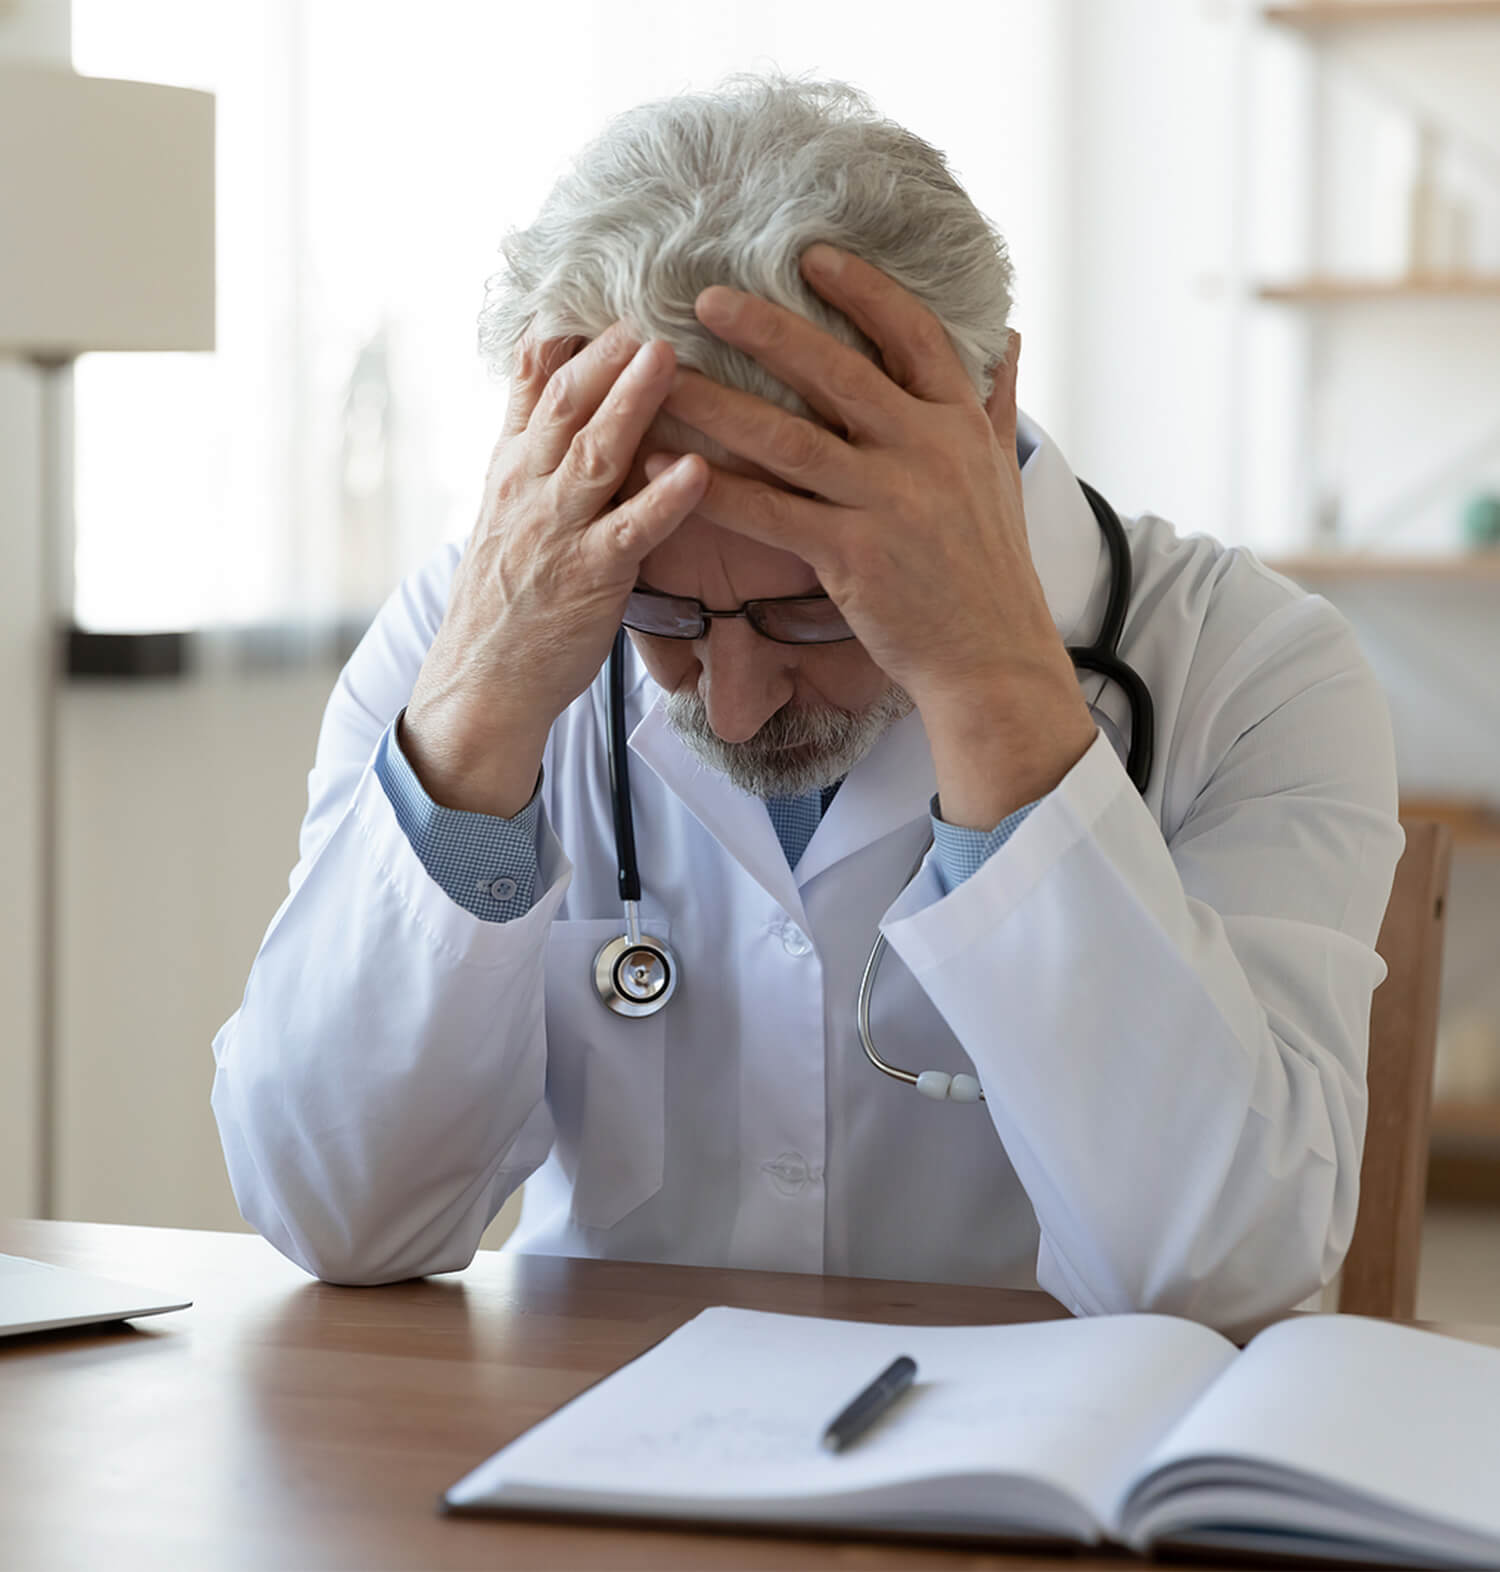 Doctor sitting at desk with notes open holding head in hand distressed. Regardless of who you are, symptoms of anxiety can affect you. When it starts to interfere, this means talking with a psychotherapist can help. Get psychotherapy support in anxiety treatment in Torrance, CA and surrounding areas soon!